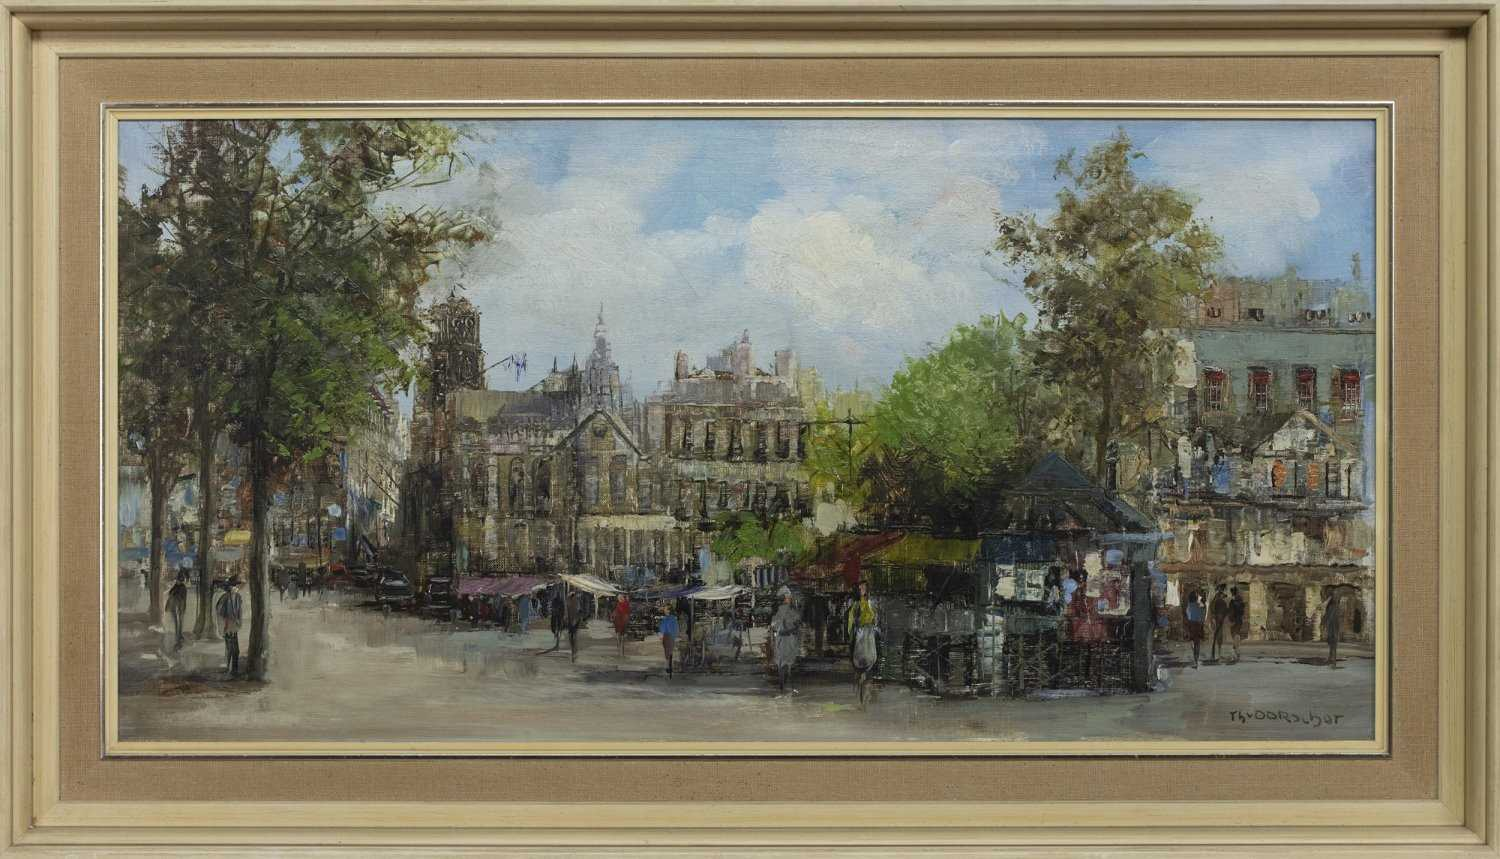 Lot 37 - CATHEDRAL SQUARE, AN OIL BY THEO VAN OORSHOT